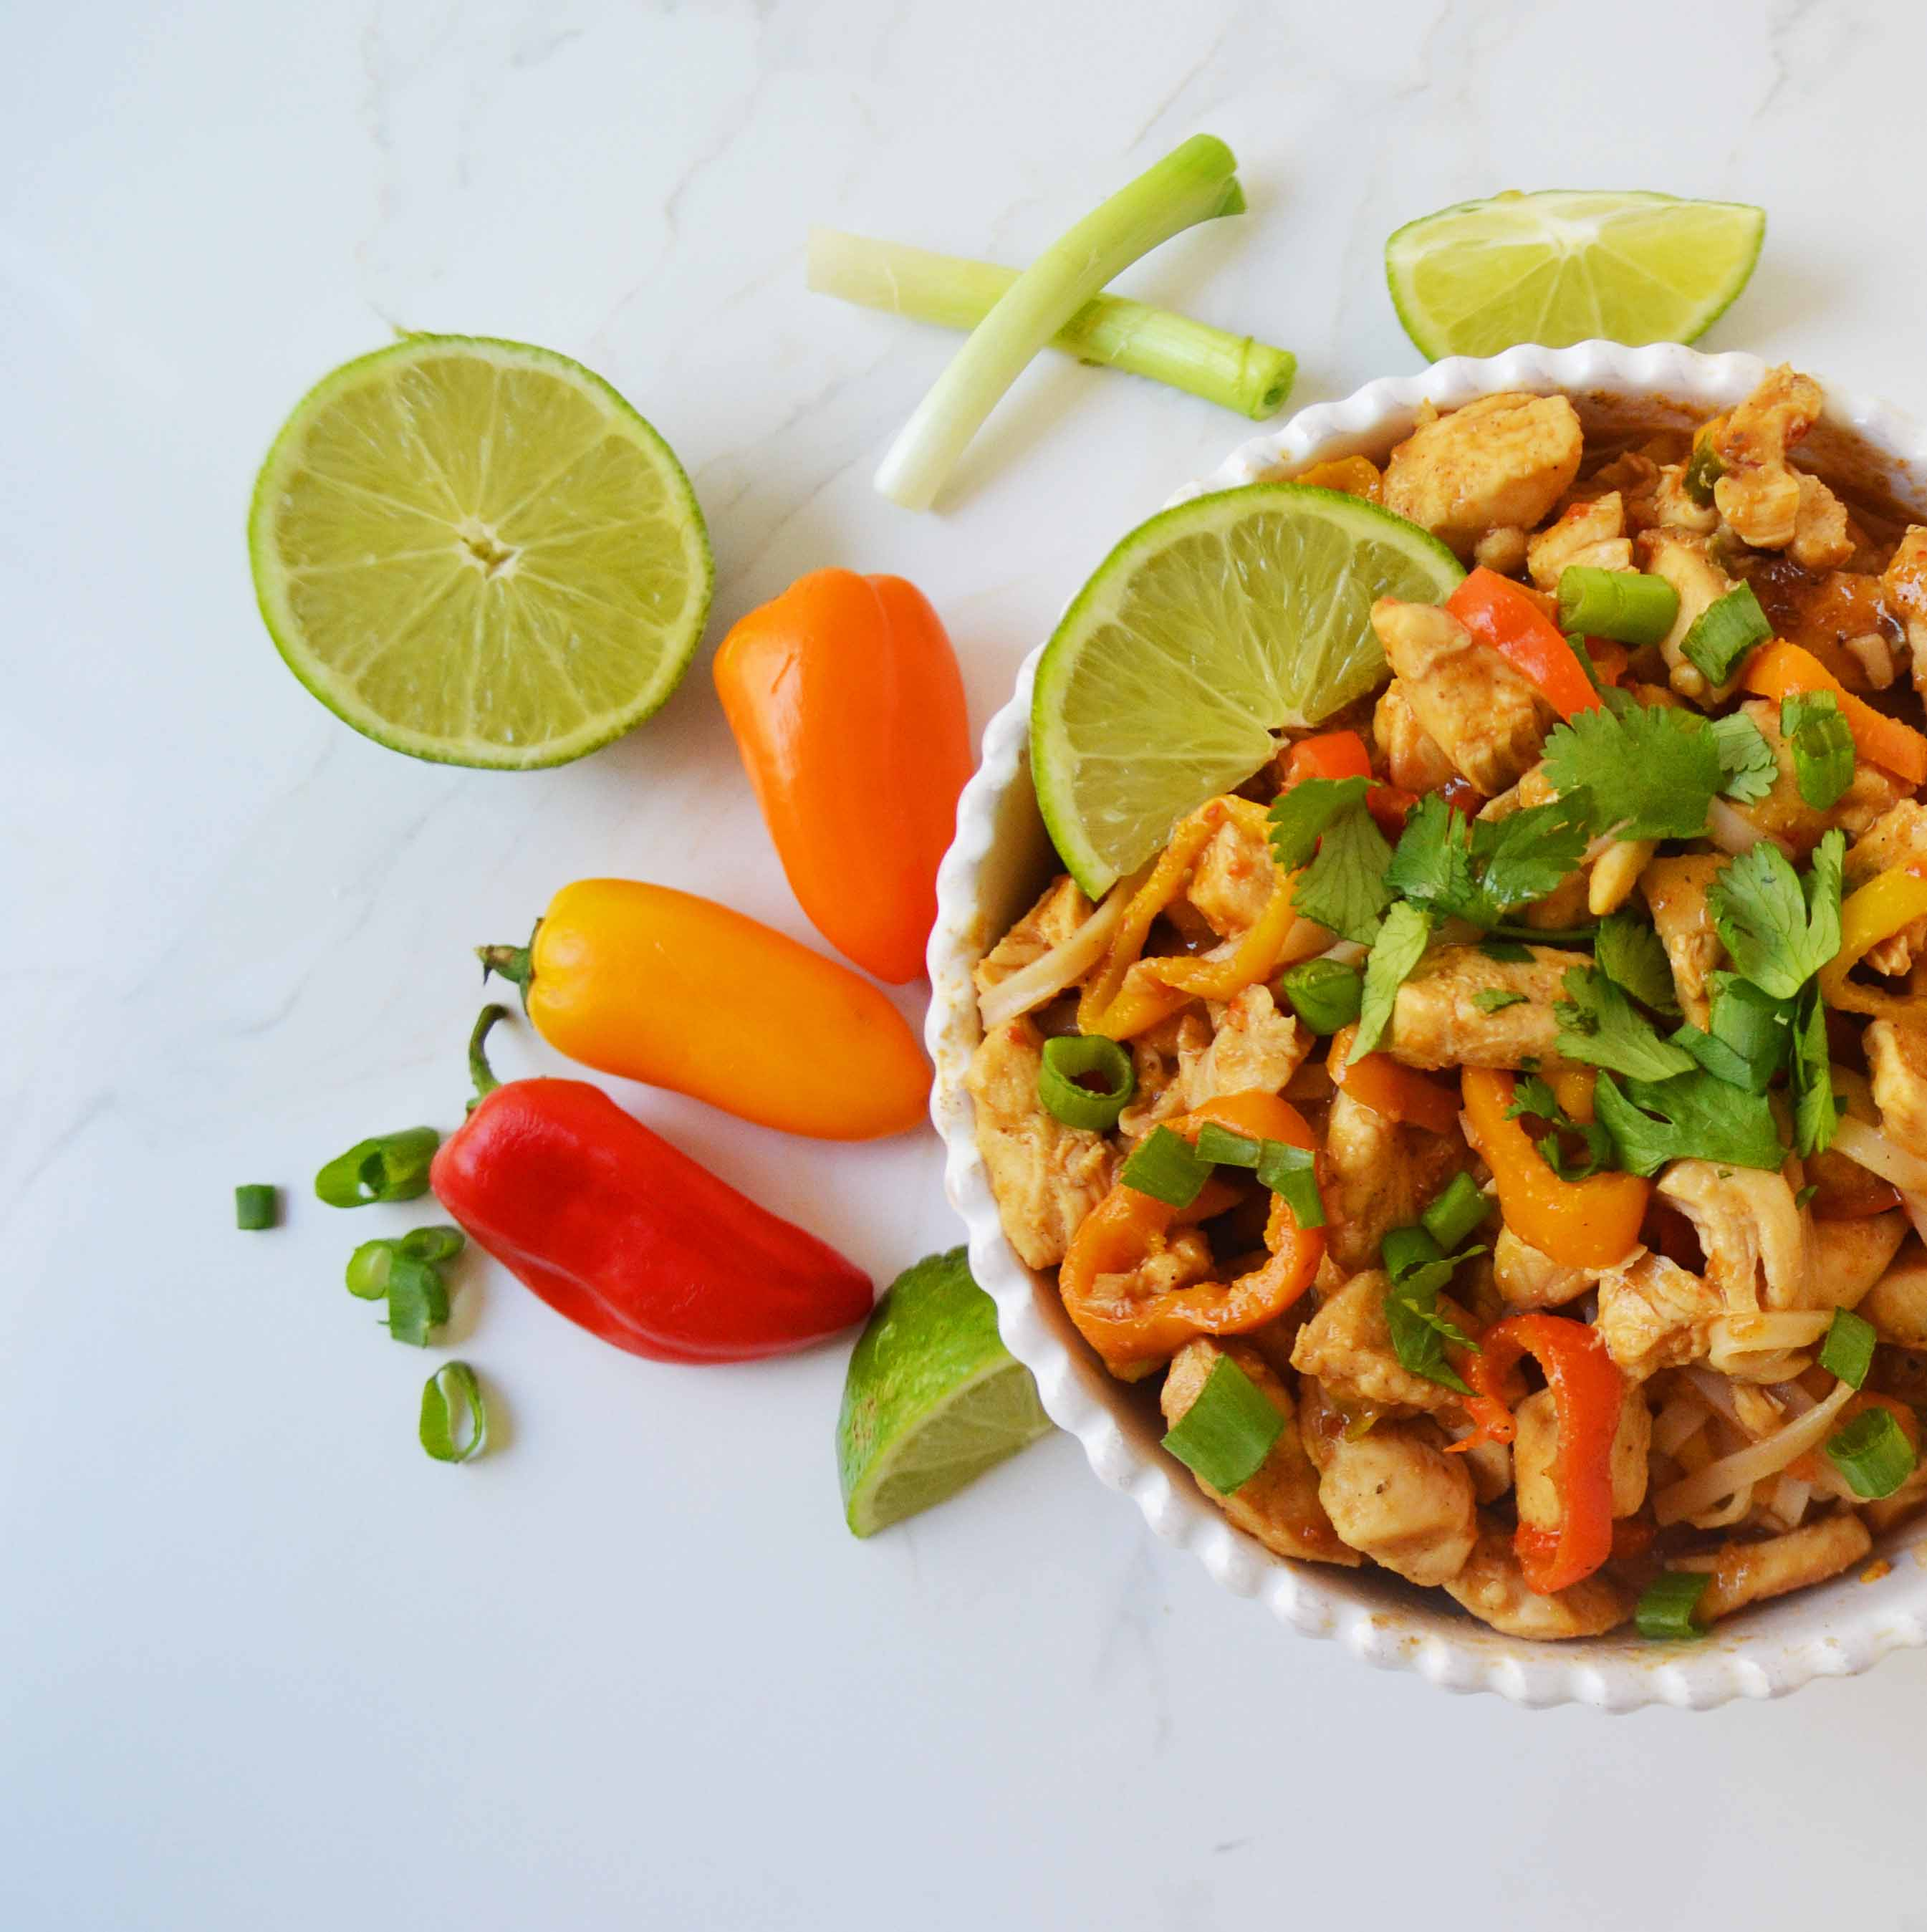 Thai Chicken Noodles by Modern Honey. Gluten-free and dairy-free dinner made in less than 30 minutes. www.modernhoney.com